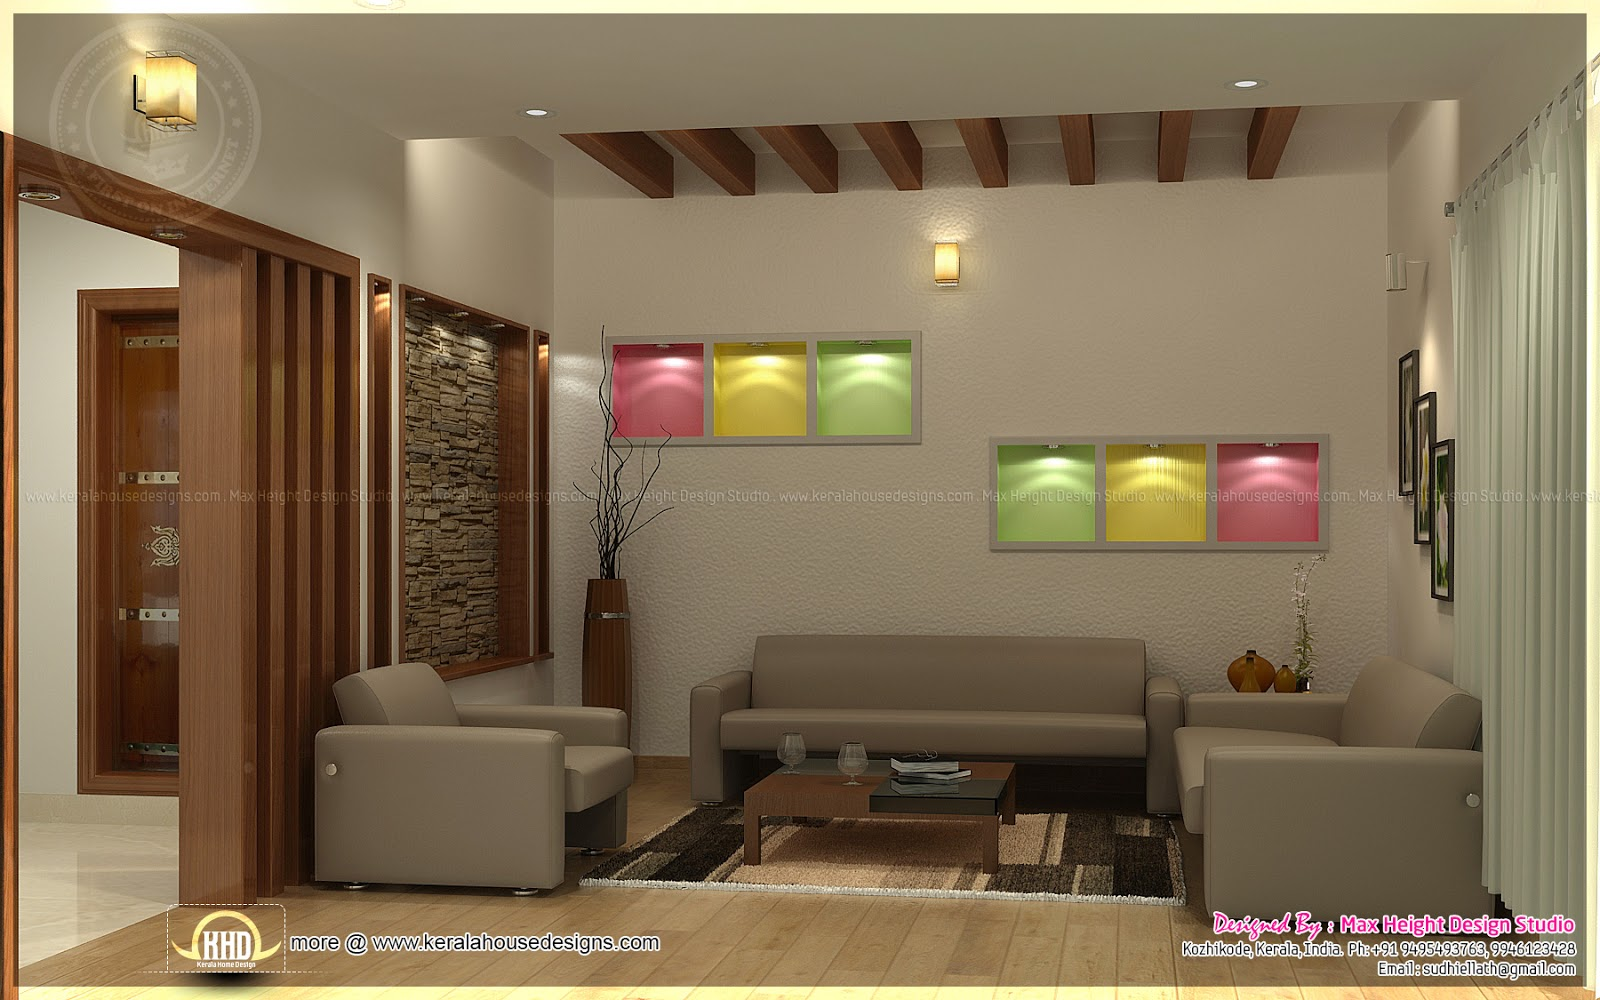 Beautiful interior ideas for home kerala home design and Low cost interior design for homes in kerala